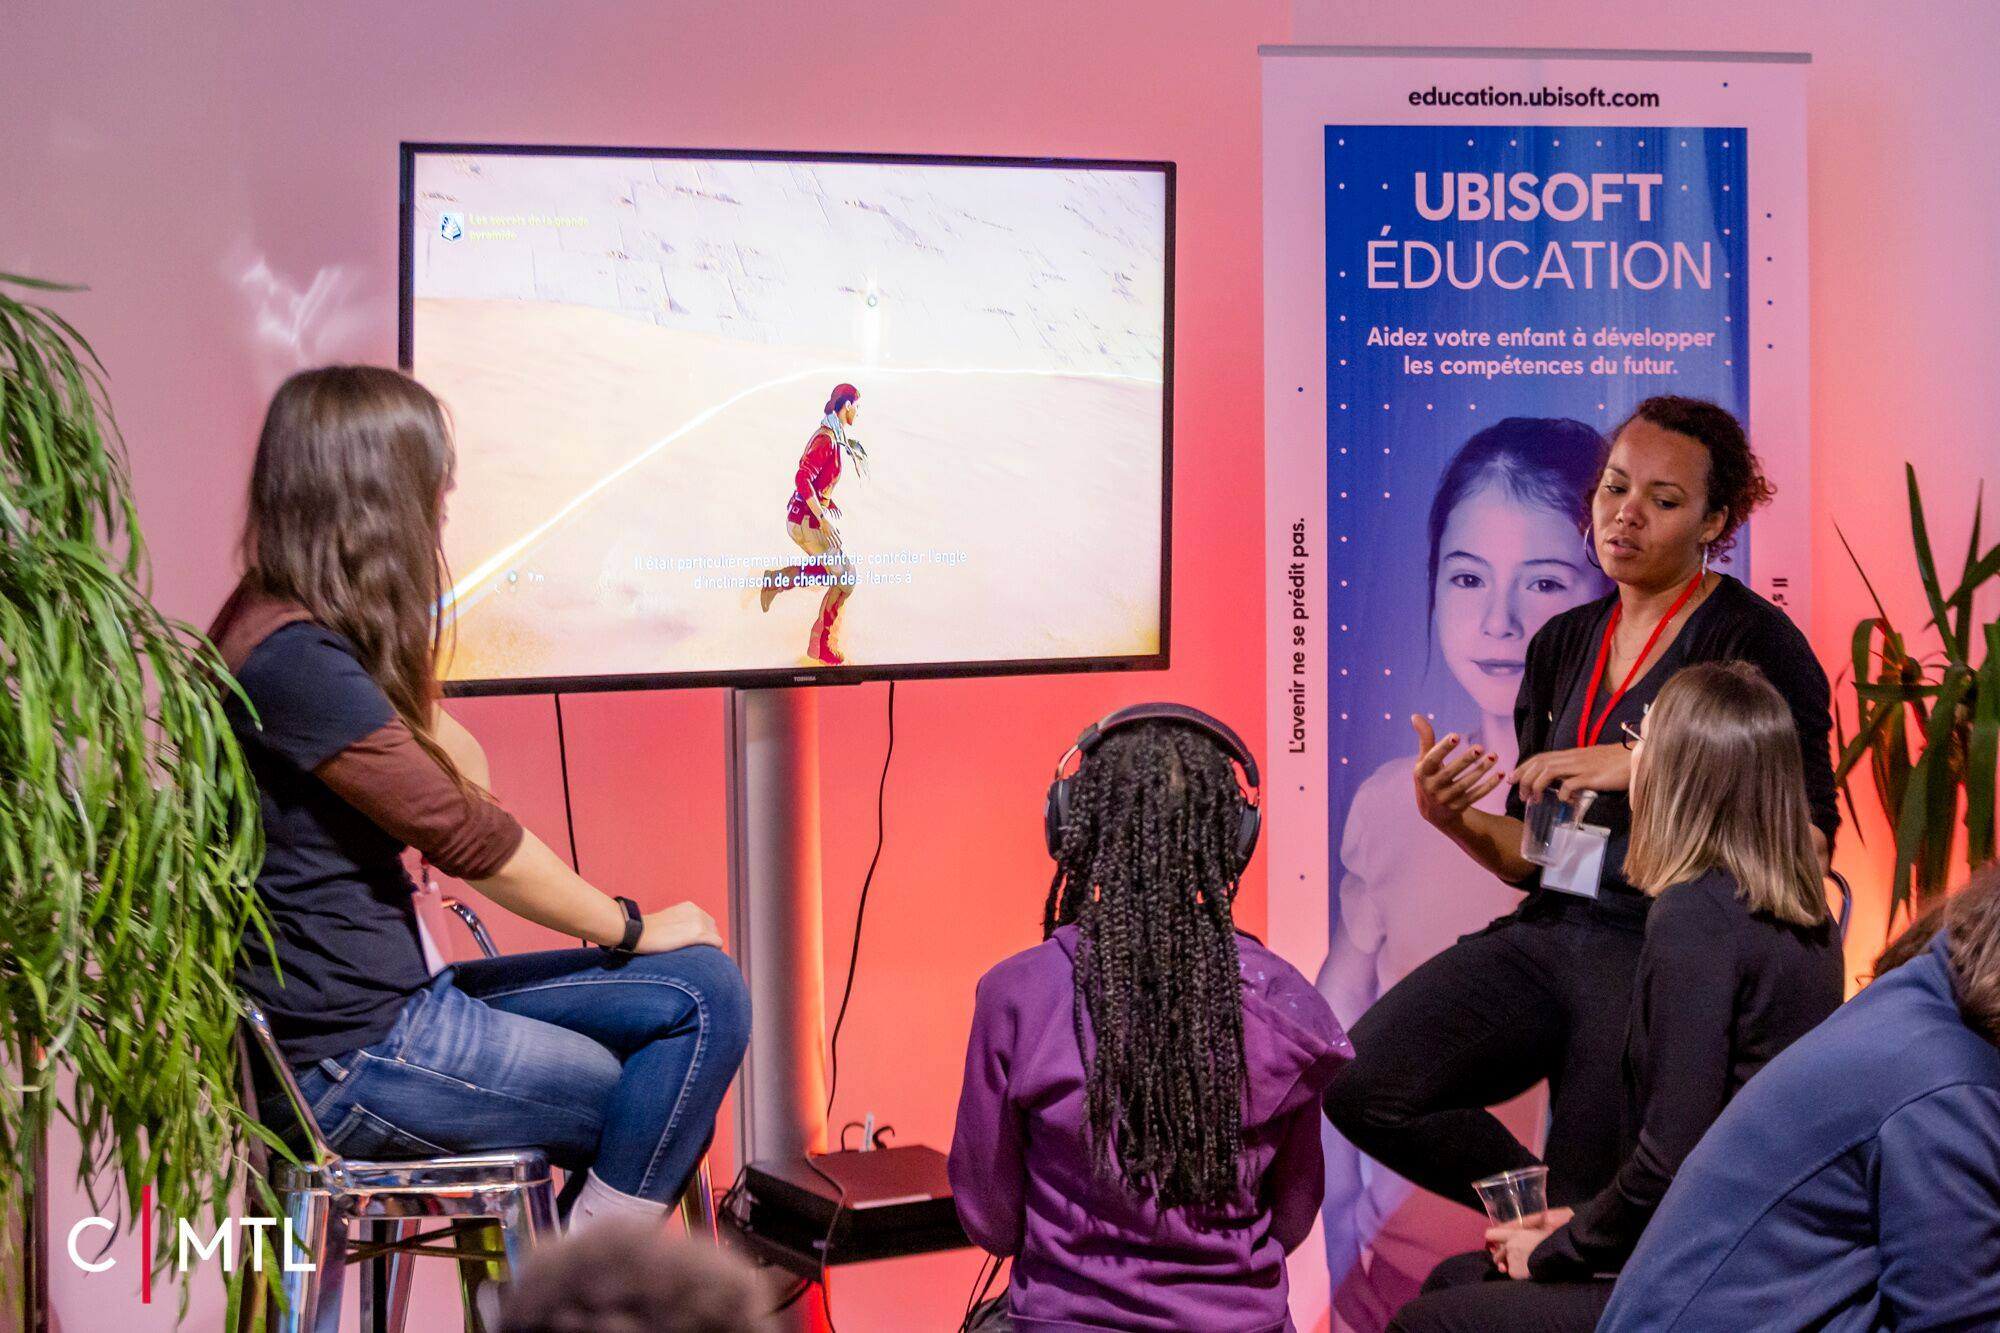 Ubisoft Education: Promoting science and tech to young girls